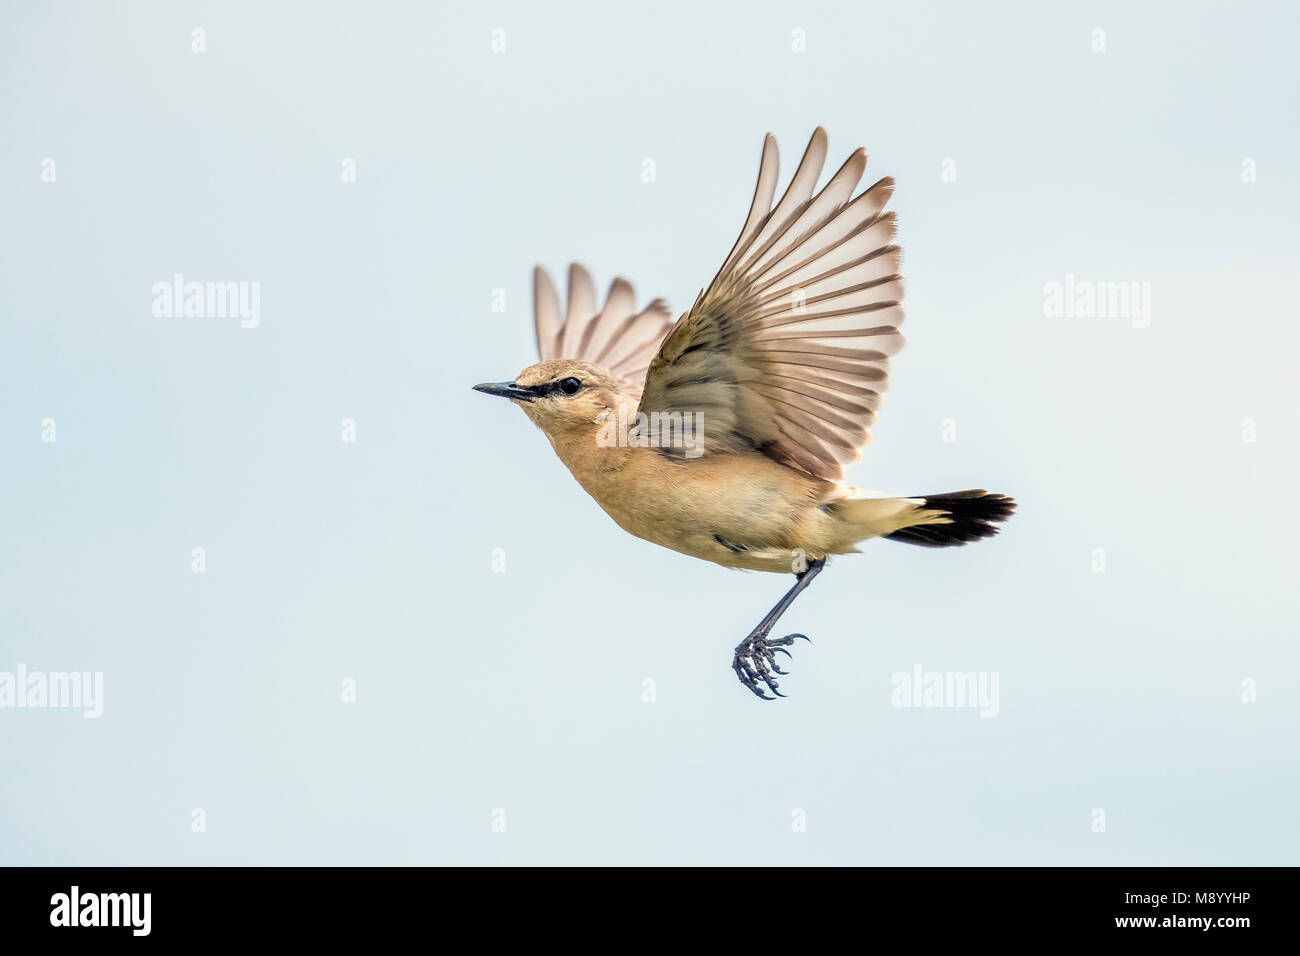 Male Isabelline Wheatear flying over the steppe of Kazakhstan. May 2017. - Stock Image